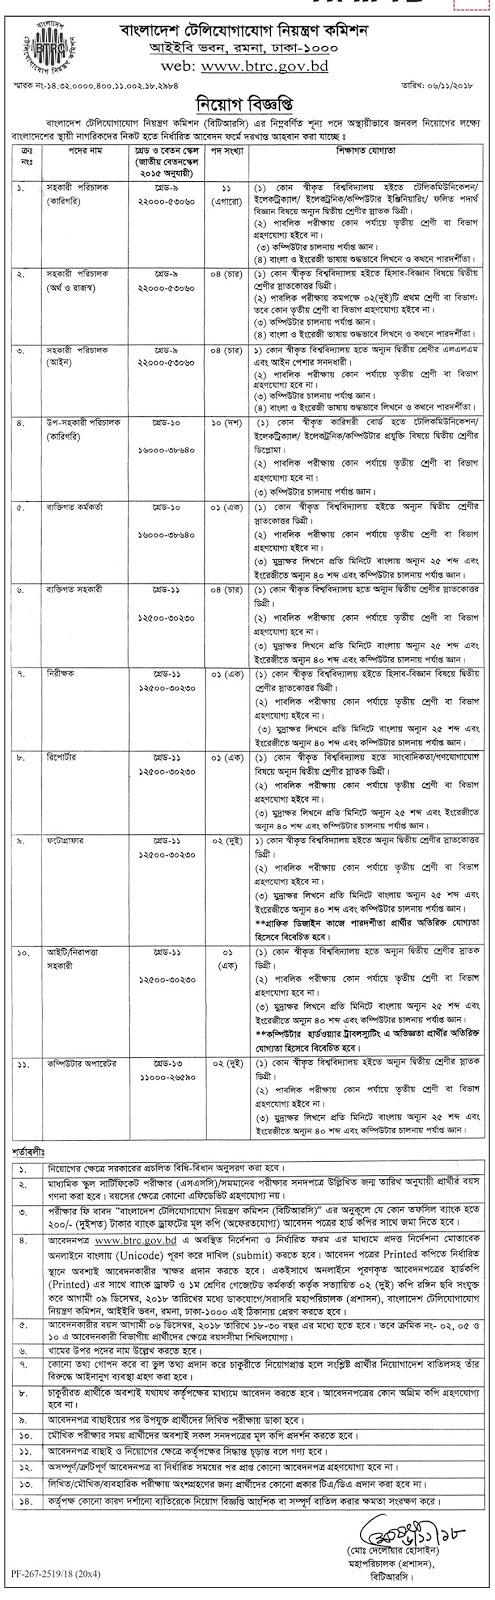 Bangladesh Telecommunication Regulatory Commission Job Circular 2018